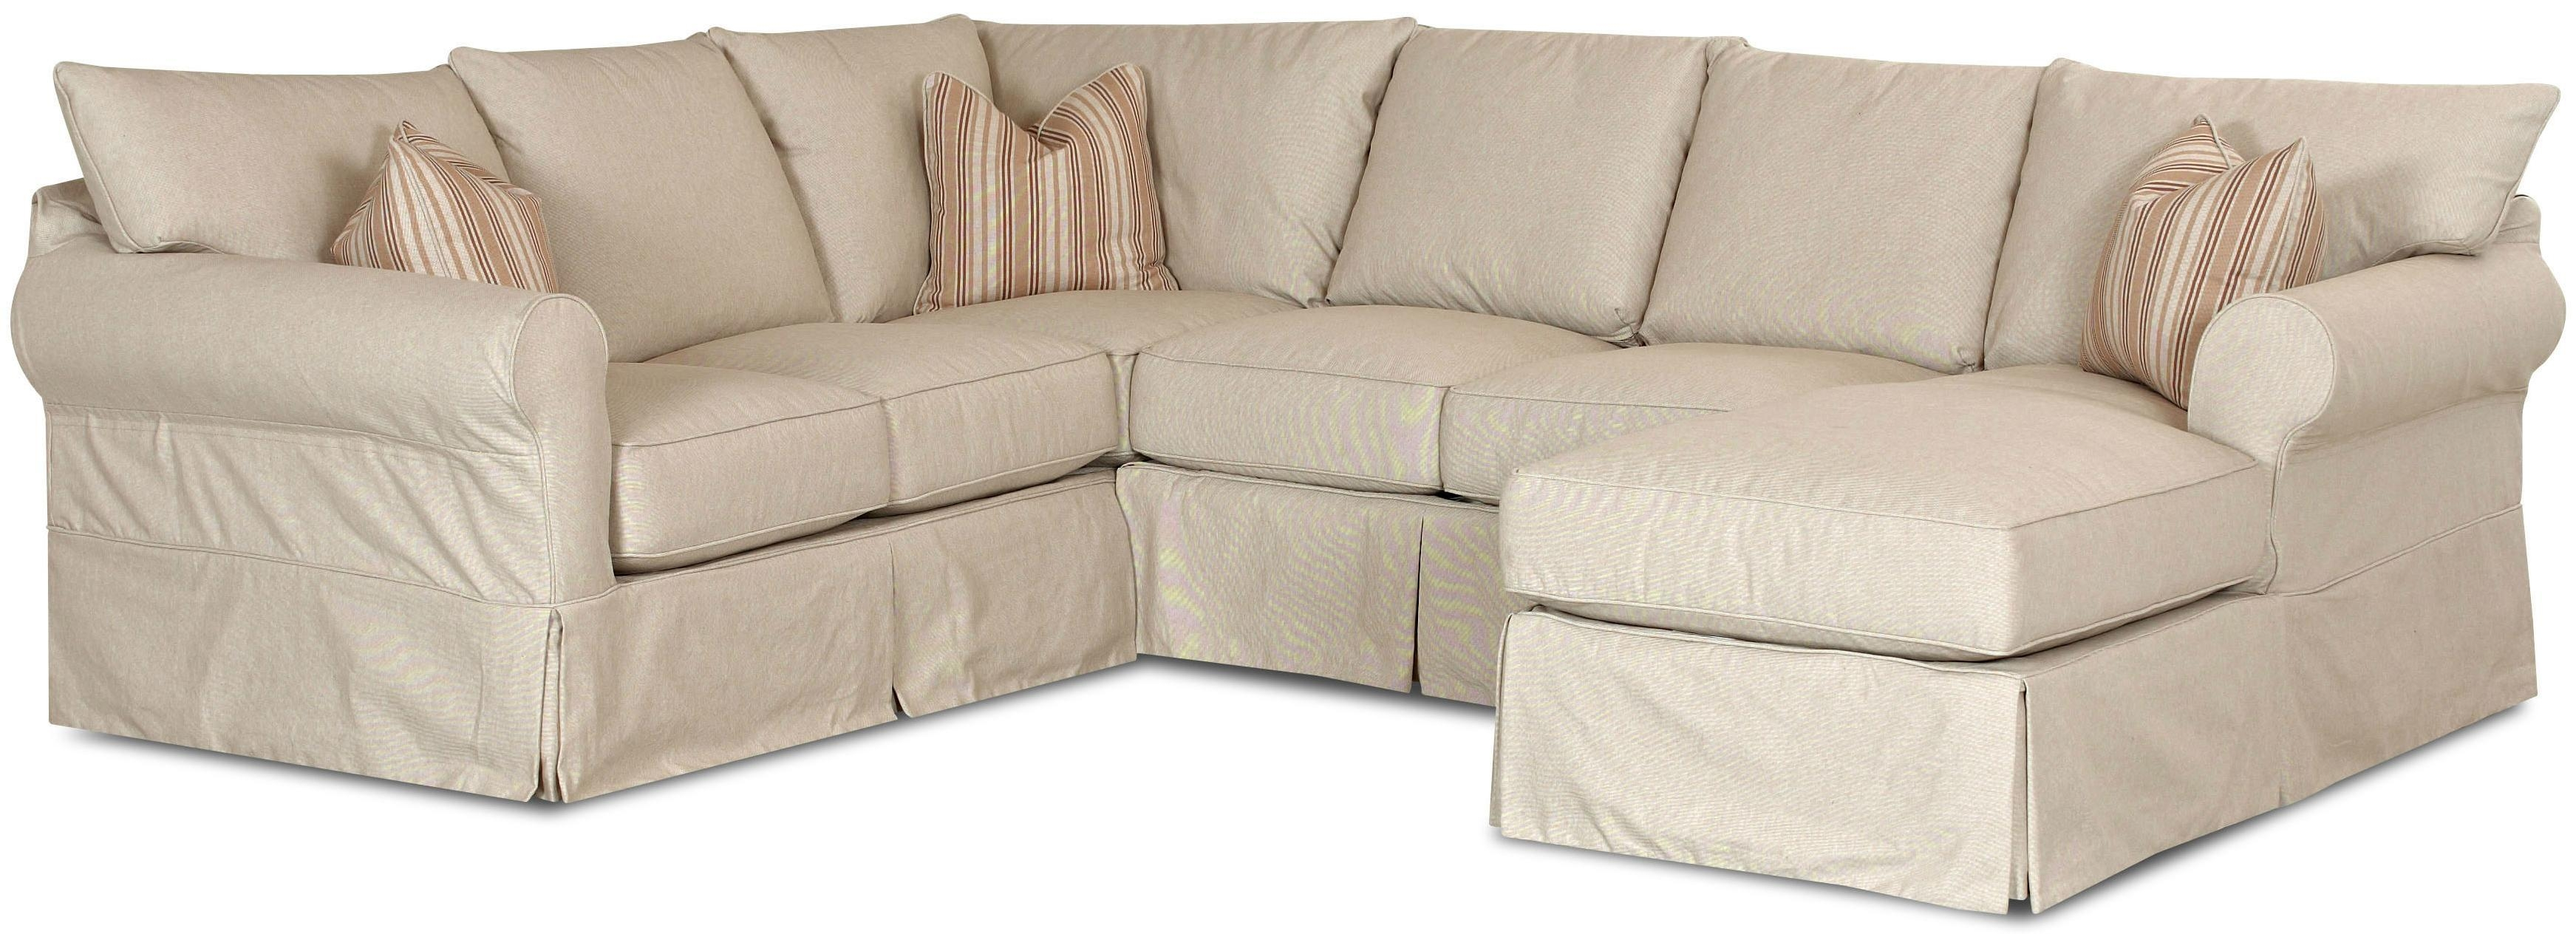 Furniture: Update Your Cozy Living Room With Cheap Sofa Covers Inside Loveseat Slipcovers 3 Pieces (View 13 of 20)